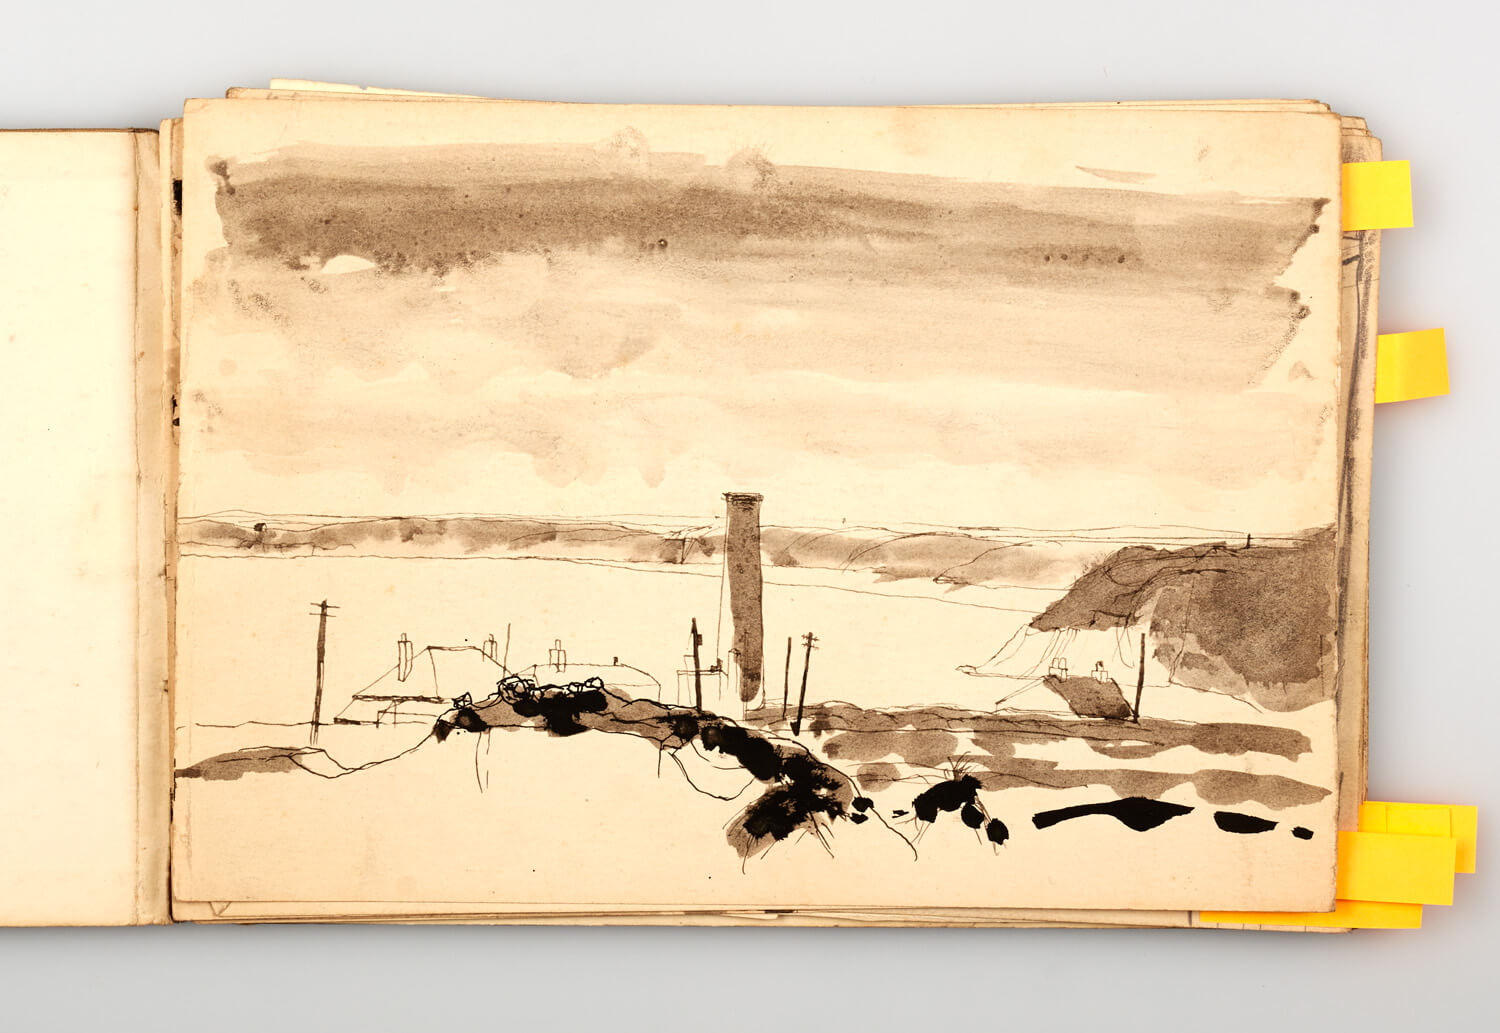 JB287 - Cornish Sketch Book 1948_49 - 1949 - 17.5 x 25.5 cm - Pen and wash